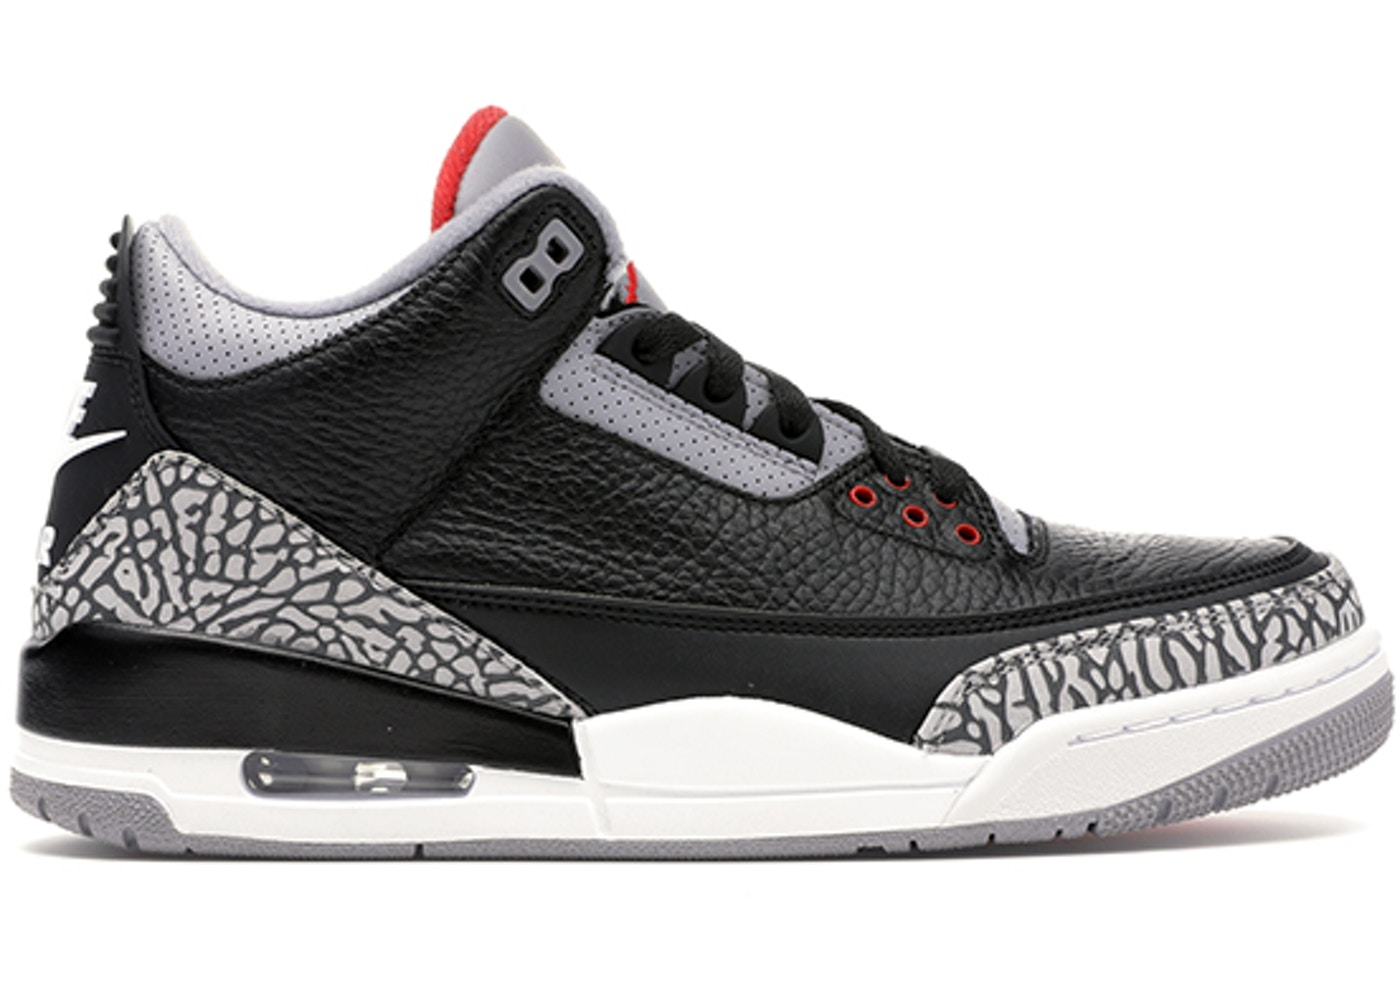 873f05b930b1dd Jordan 3 Retro Black Cement (2018) - 854262-001